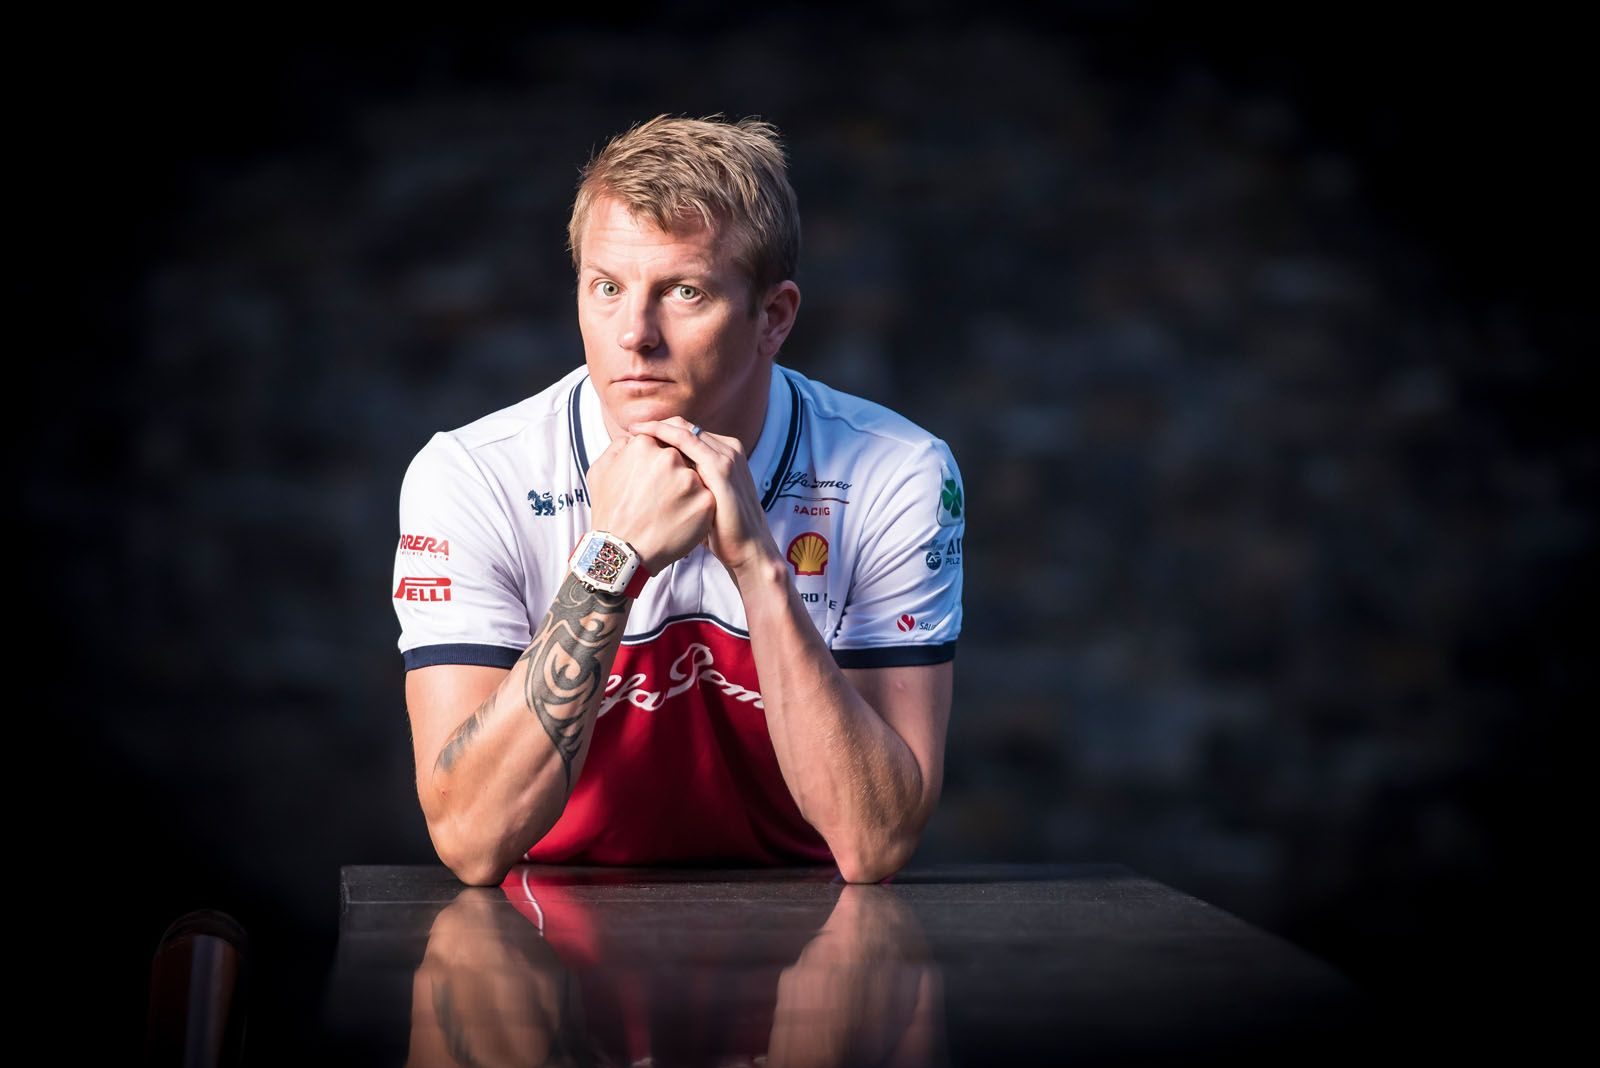 Kimi Räikkönen, the Finnish speedster, was present at the global launch of the RM 50-04 Tourbillon Split-Seconds Chronograph Kimi Räikkönen held at Capella Singapore in conjunction with the Singapore Grand Prix